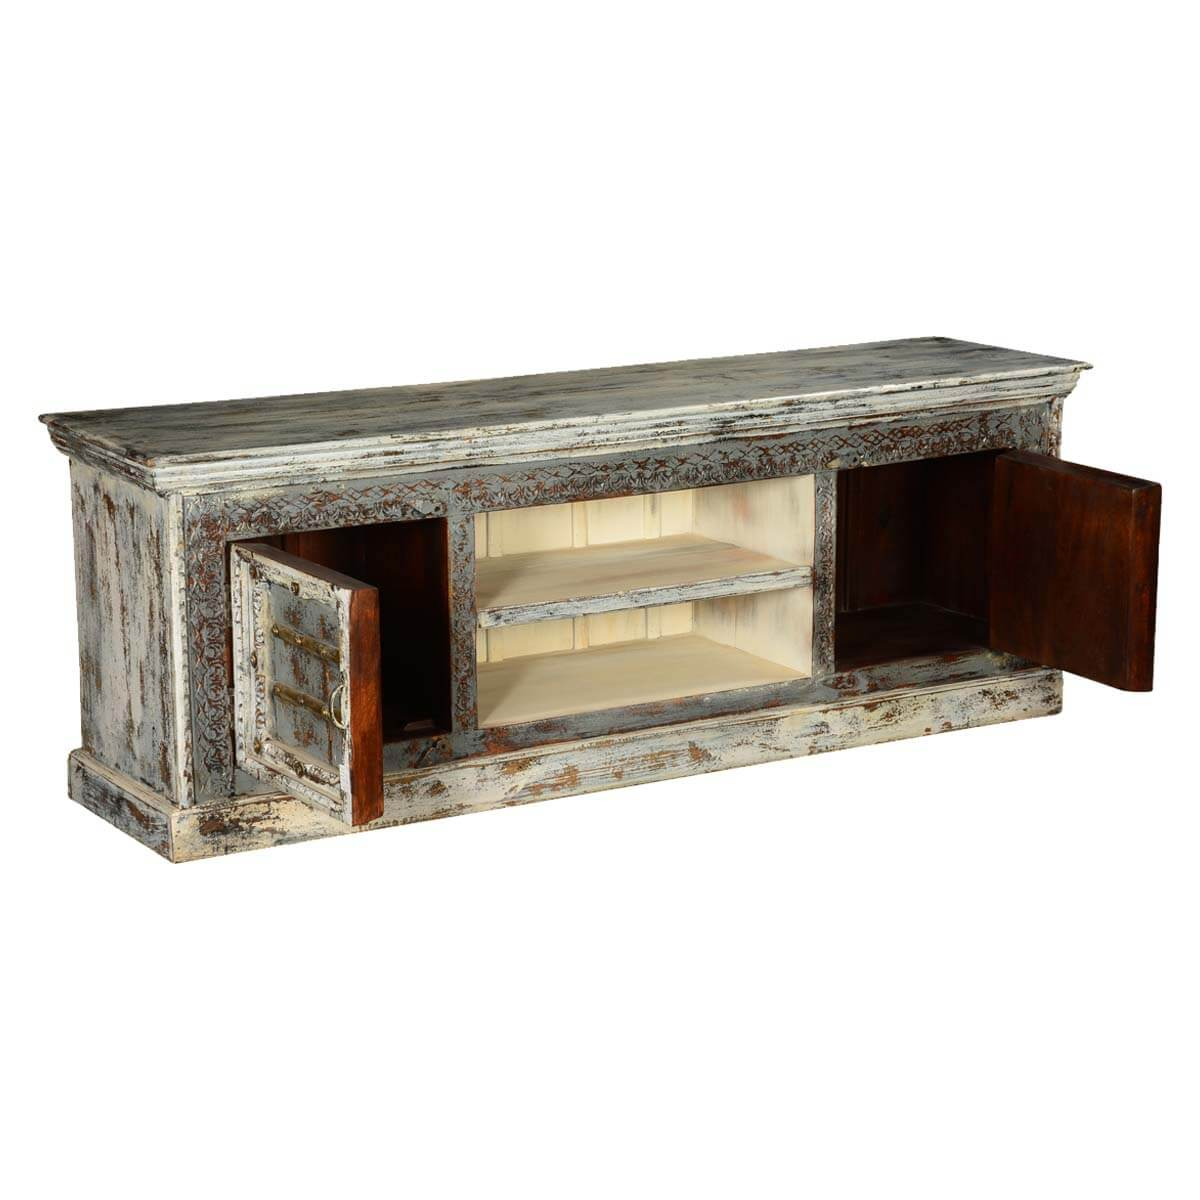 Gothic Winter Mango Wood Rustic Tv Console Media Stand